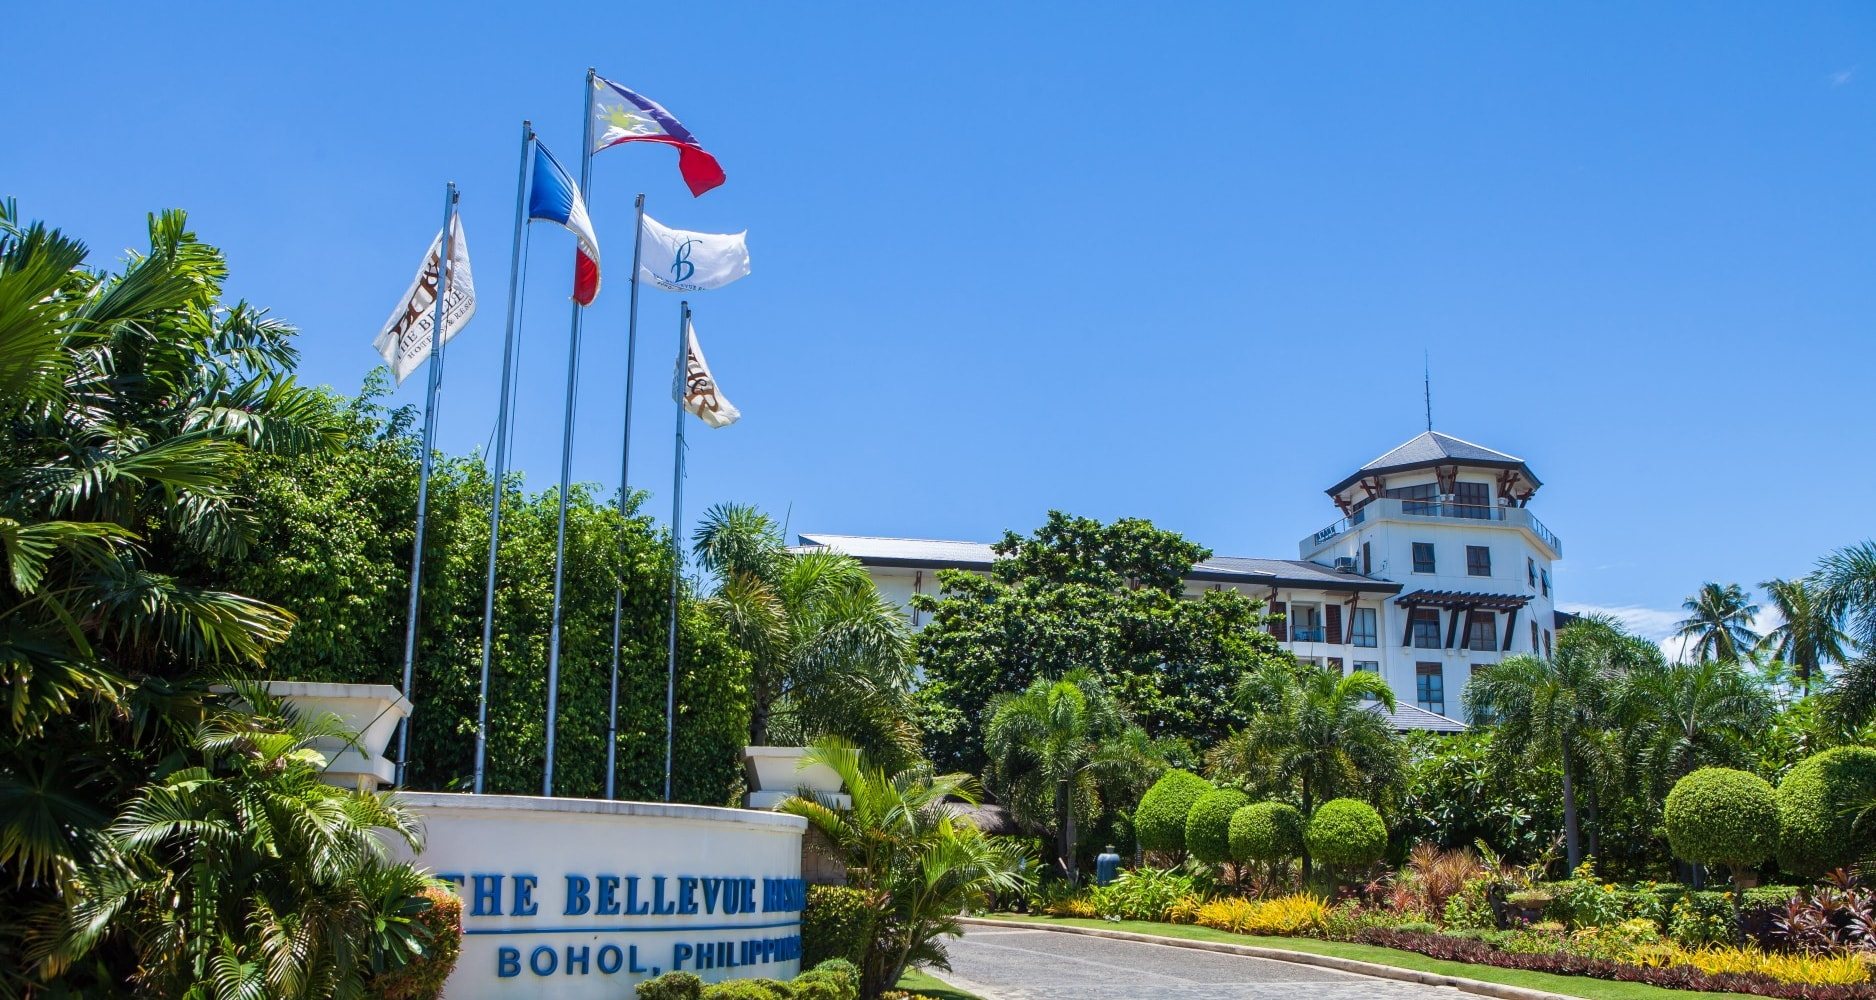 The Bellevue Resort in Bohol, Philippines - TBR contact us banner 01